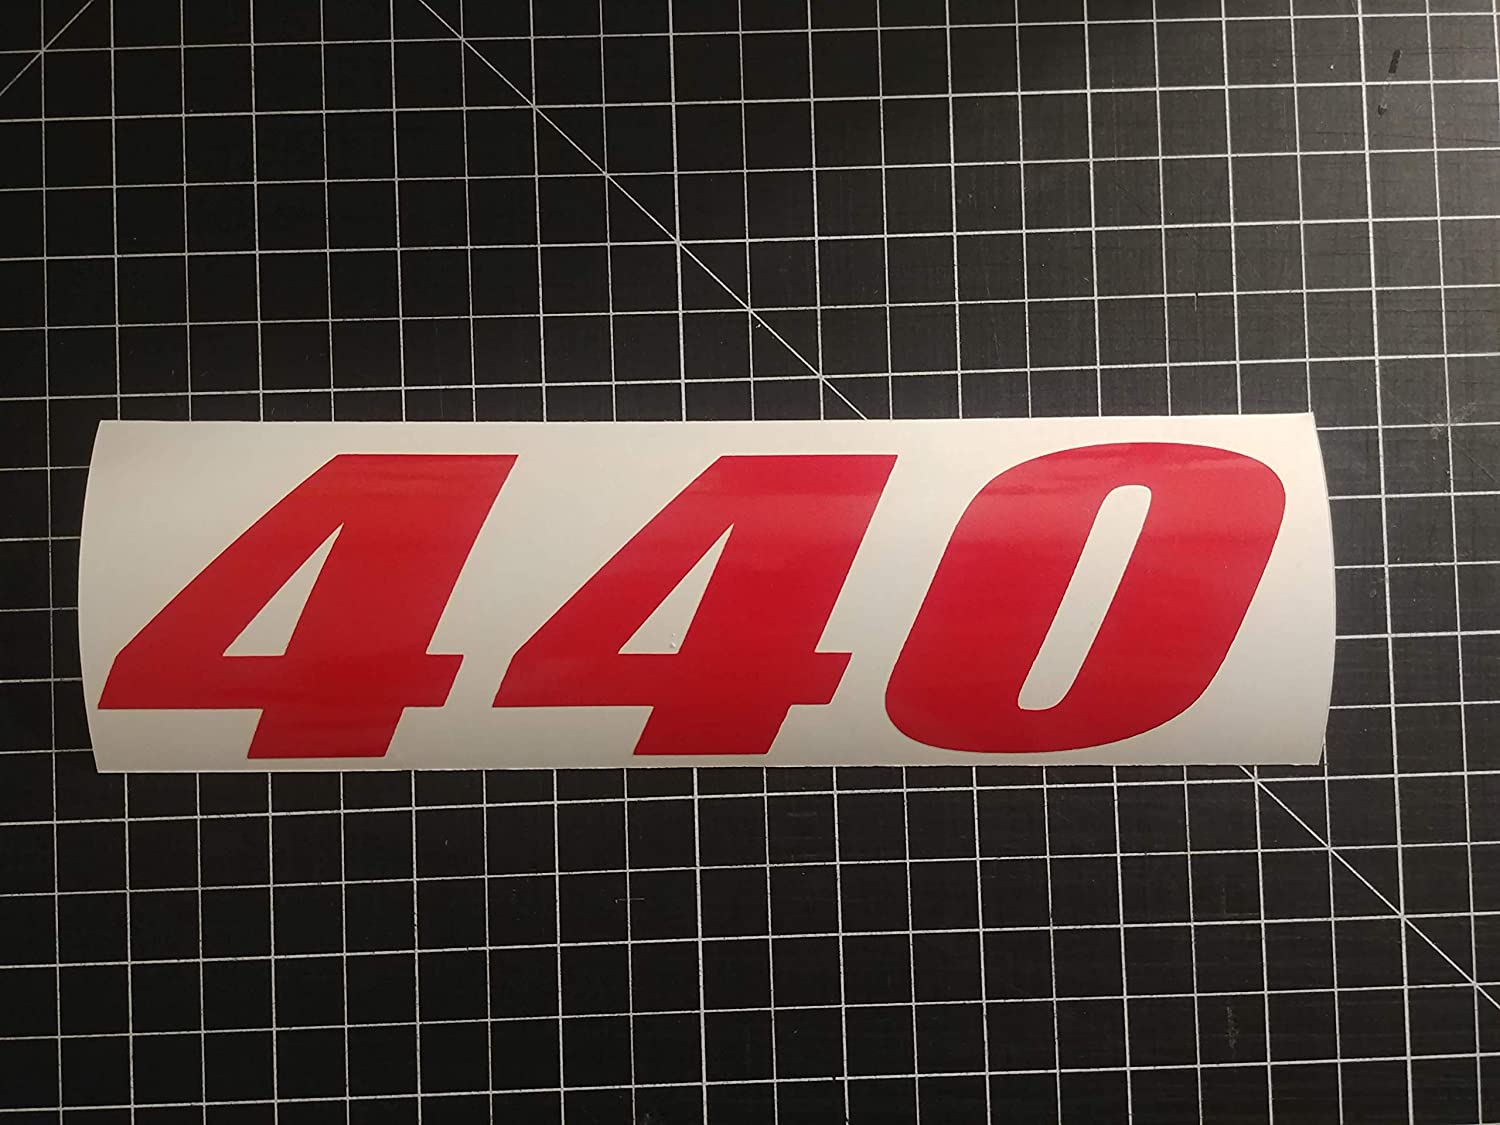 Multi-Color 440 engine HP Mopar decal sticker 4-9 Dodge Chrysler Plymouth or a Snowmobile